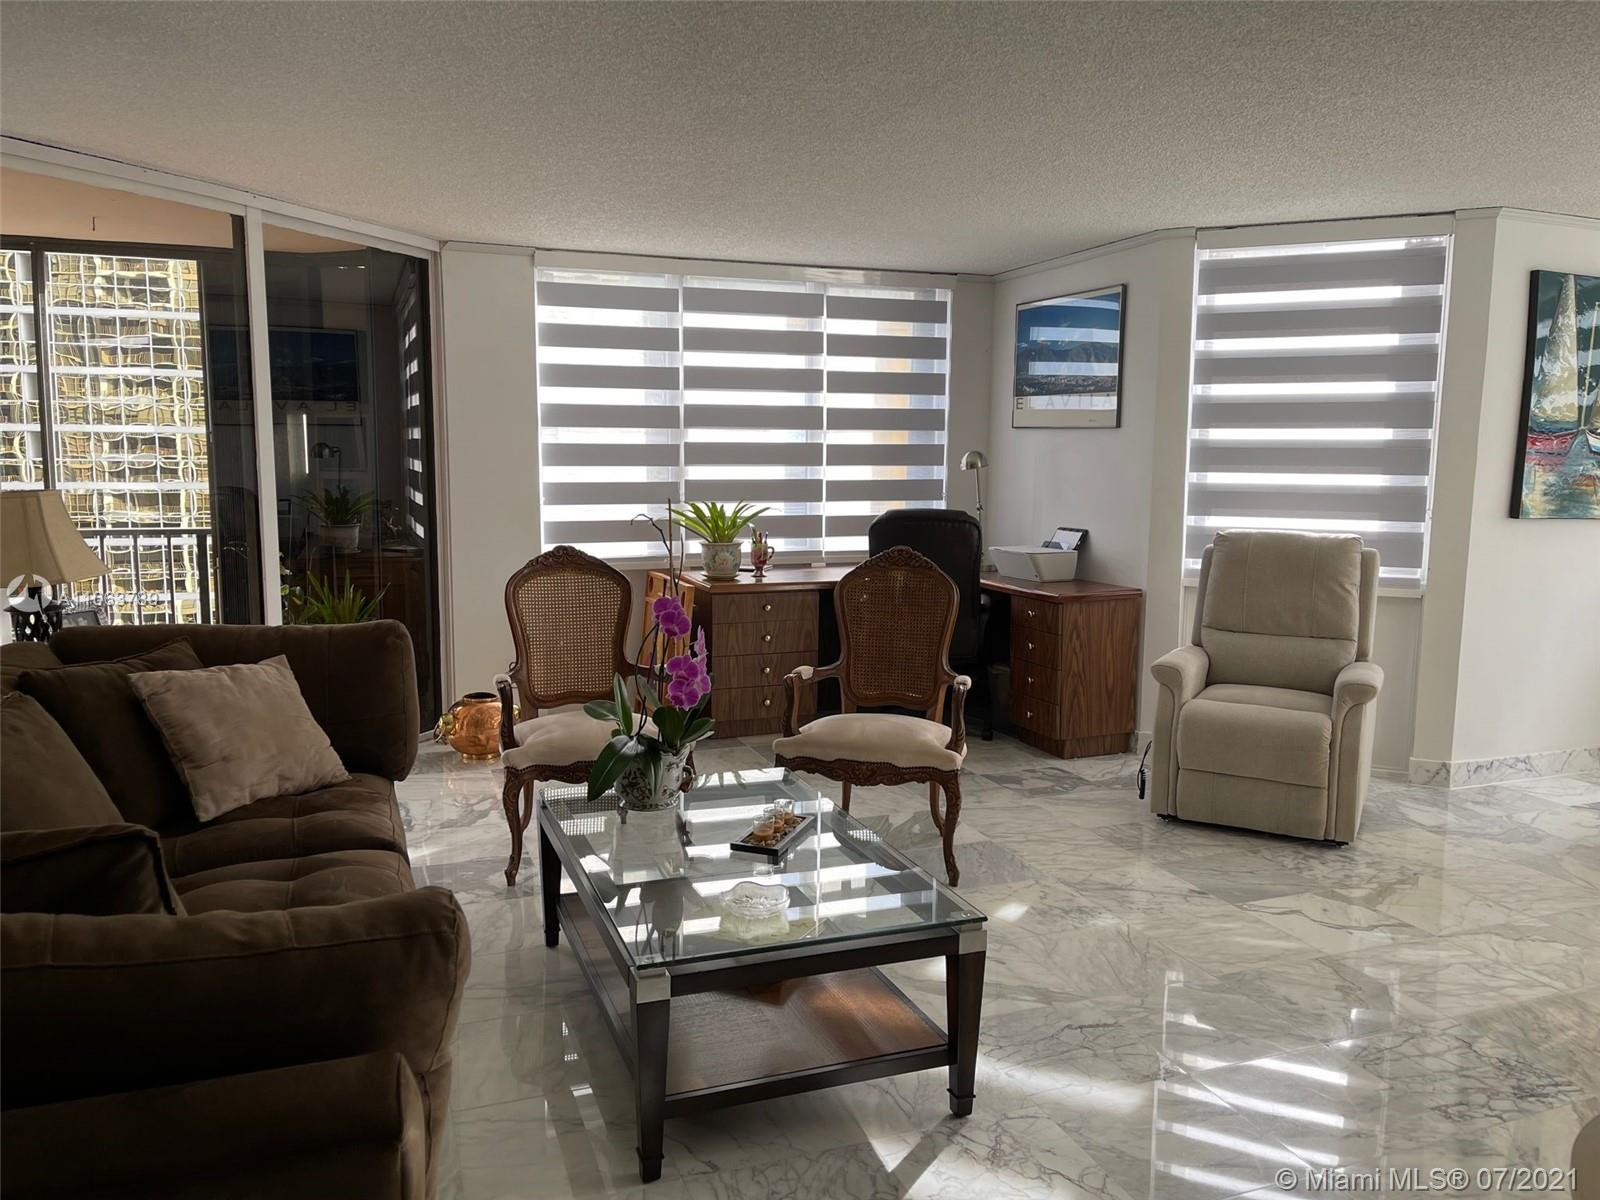 Brickell Place #D1213 - 02 - photo